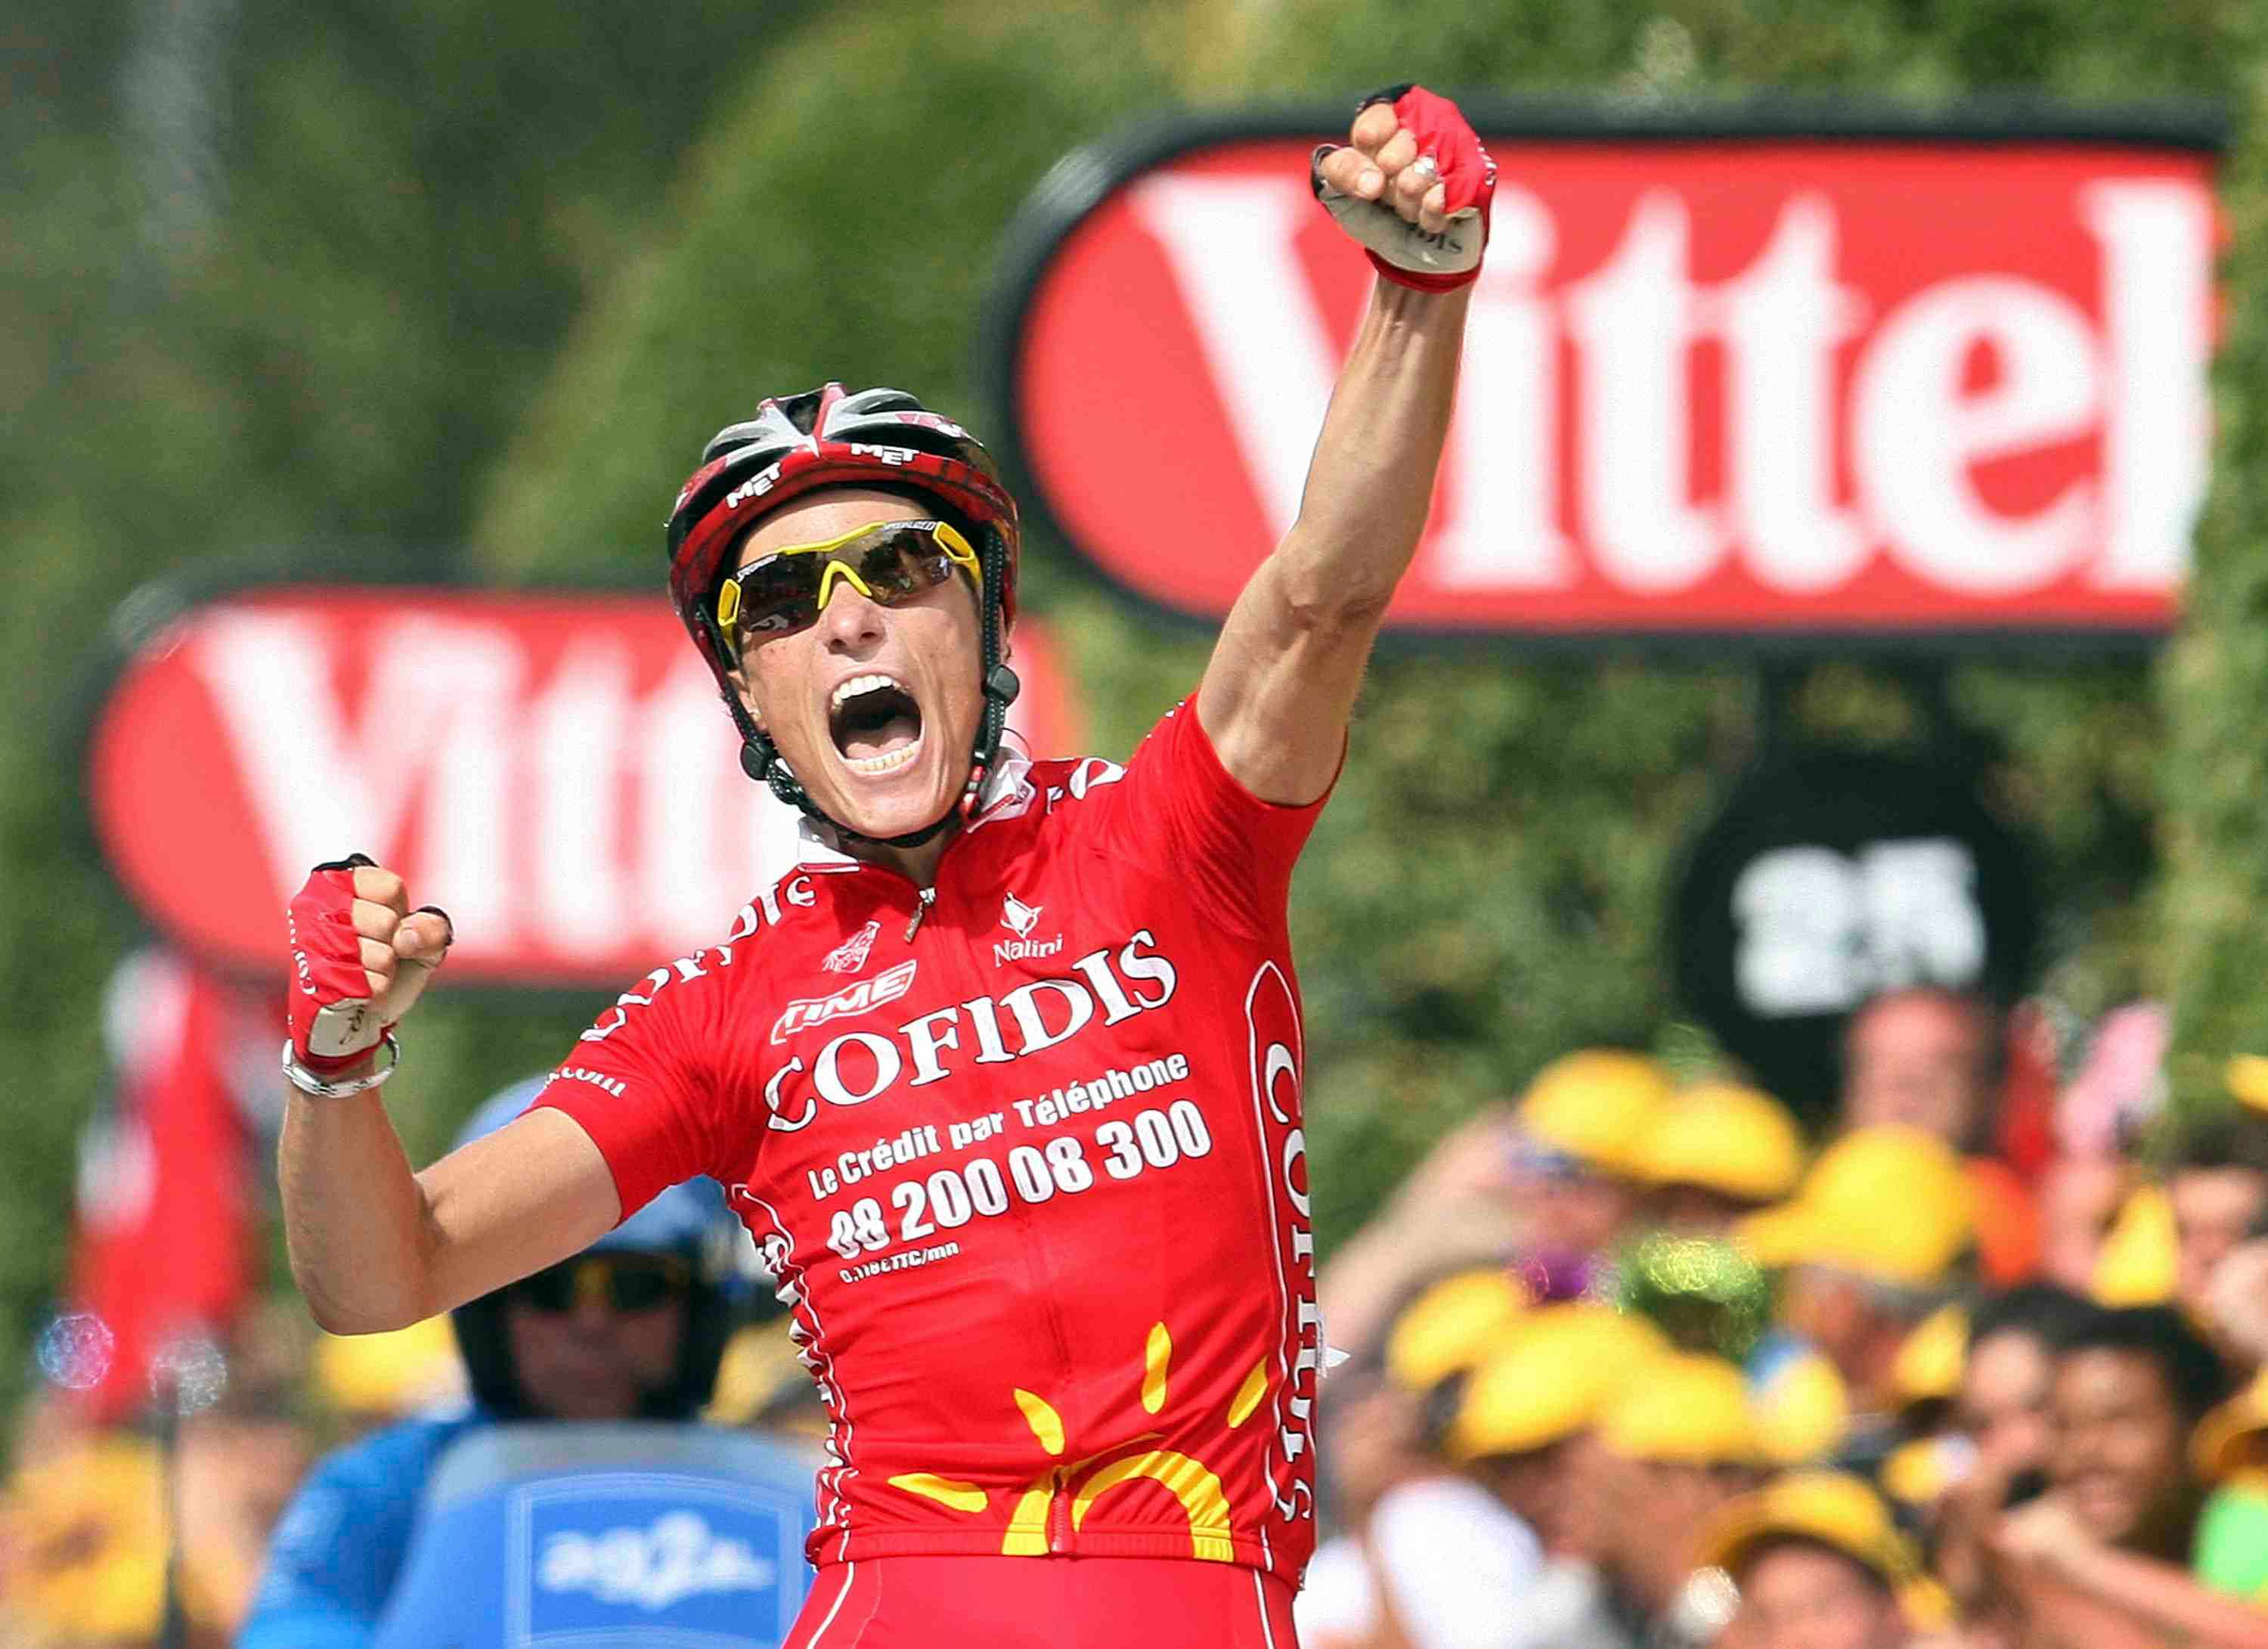 An exuberant Sylvain Chavanel dedicated his win to a lost friend.